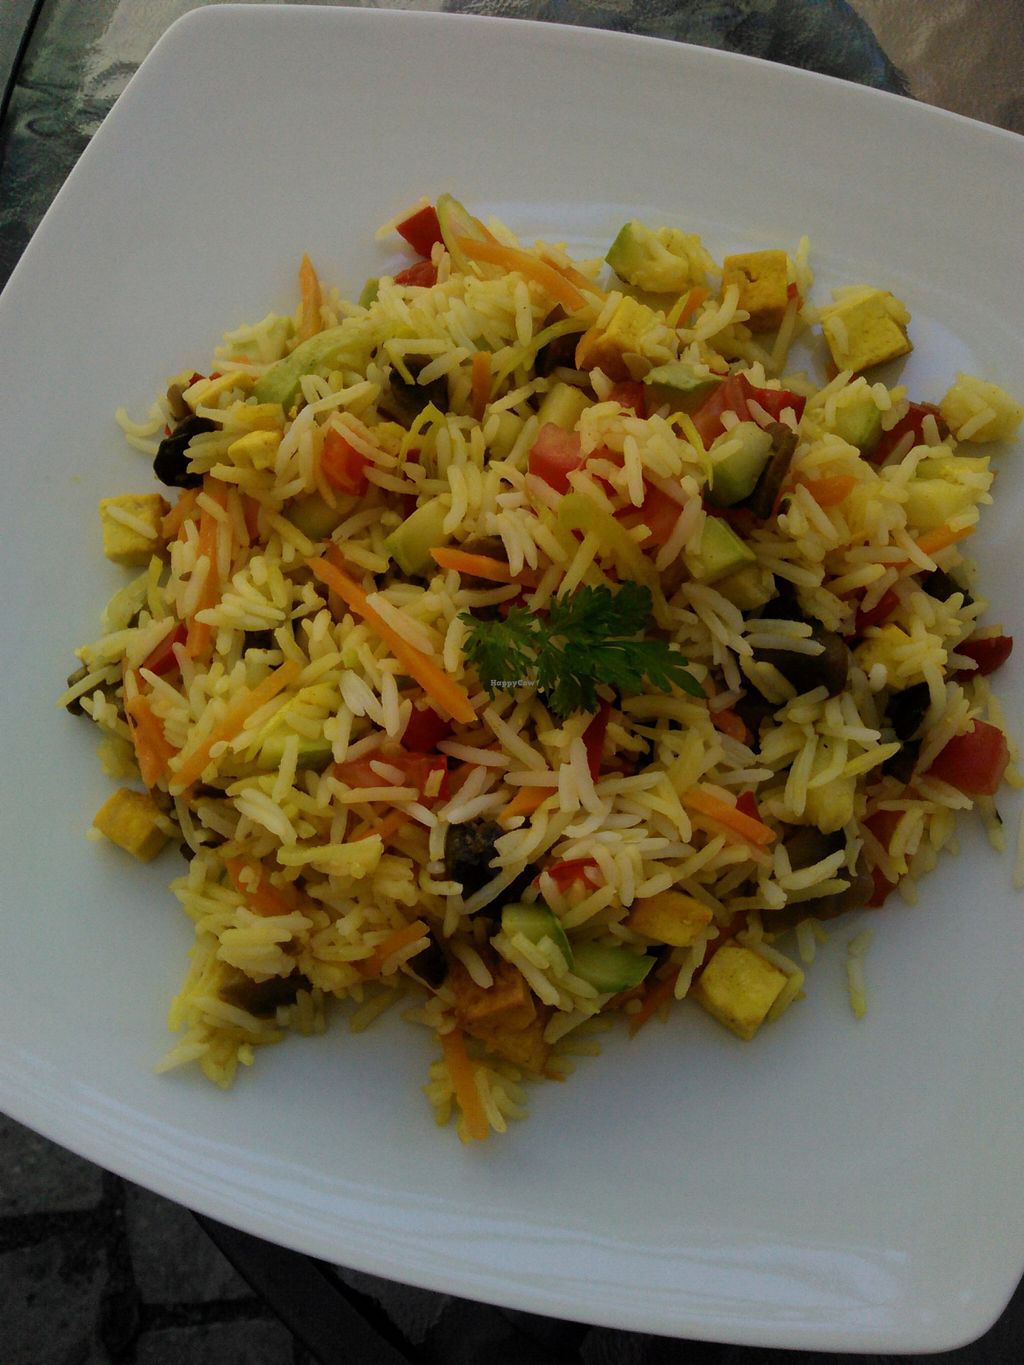 """Photo of BIOFresh  by <a href=""""/members/profile/alexandra_vegan"""">alexandra_vegan</a> <br/>Basmati rice with tofu. My all time favorite, this is the dish I order most often <br/> March 7, 2016  - <a href='/contact/abuse/image/62092/139206'>Report</a>"""